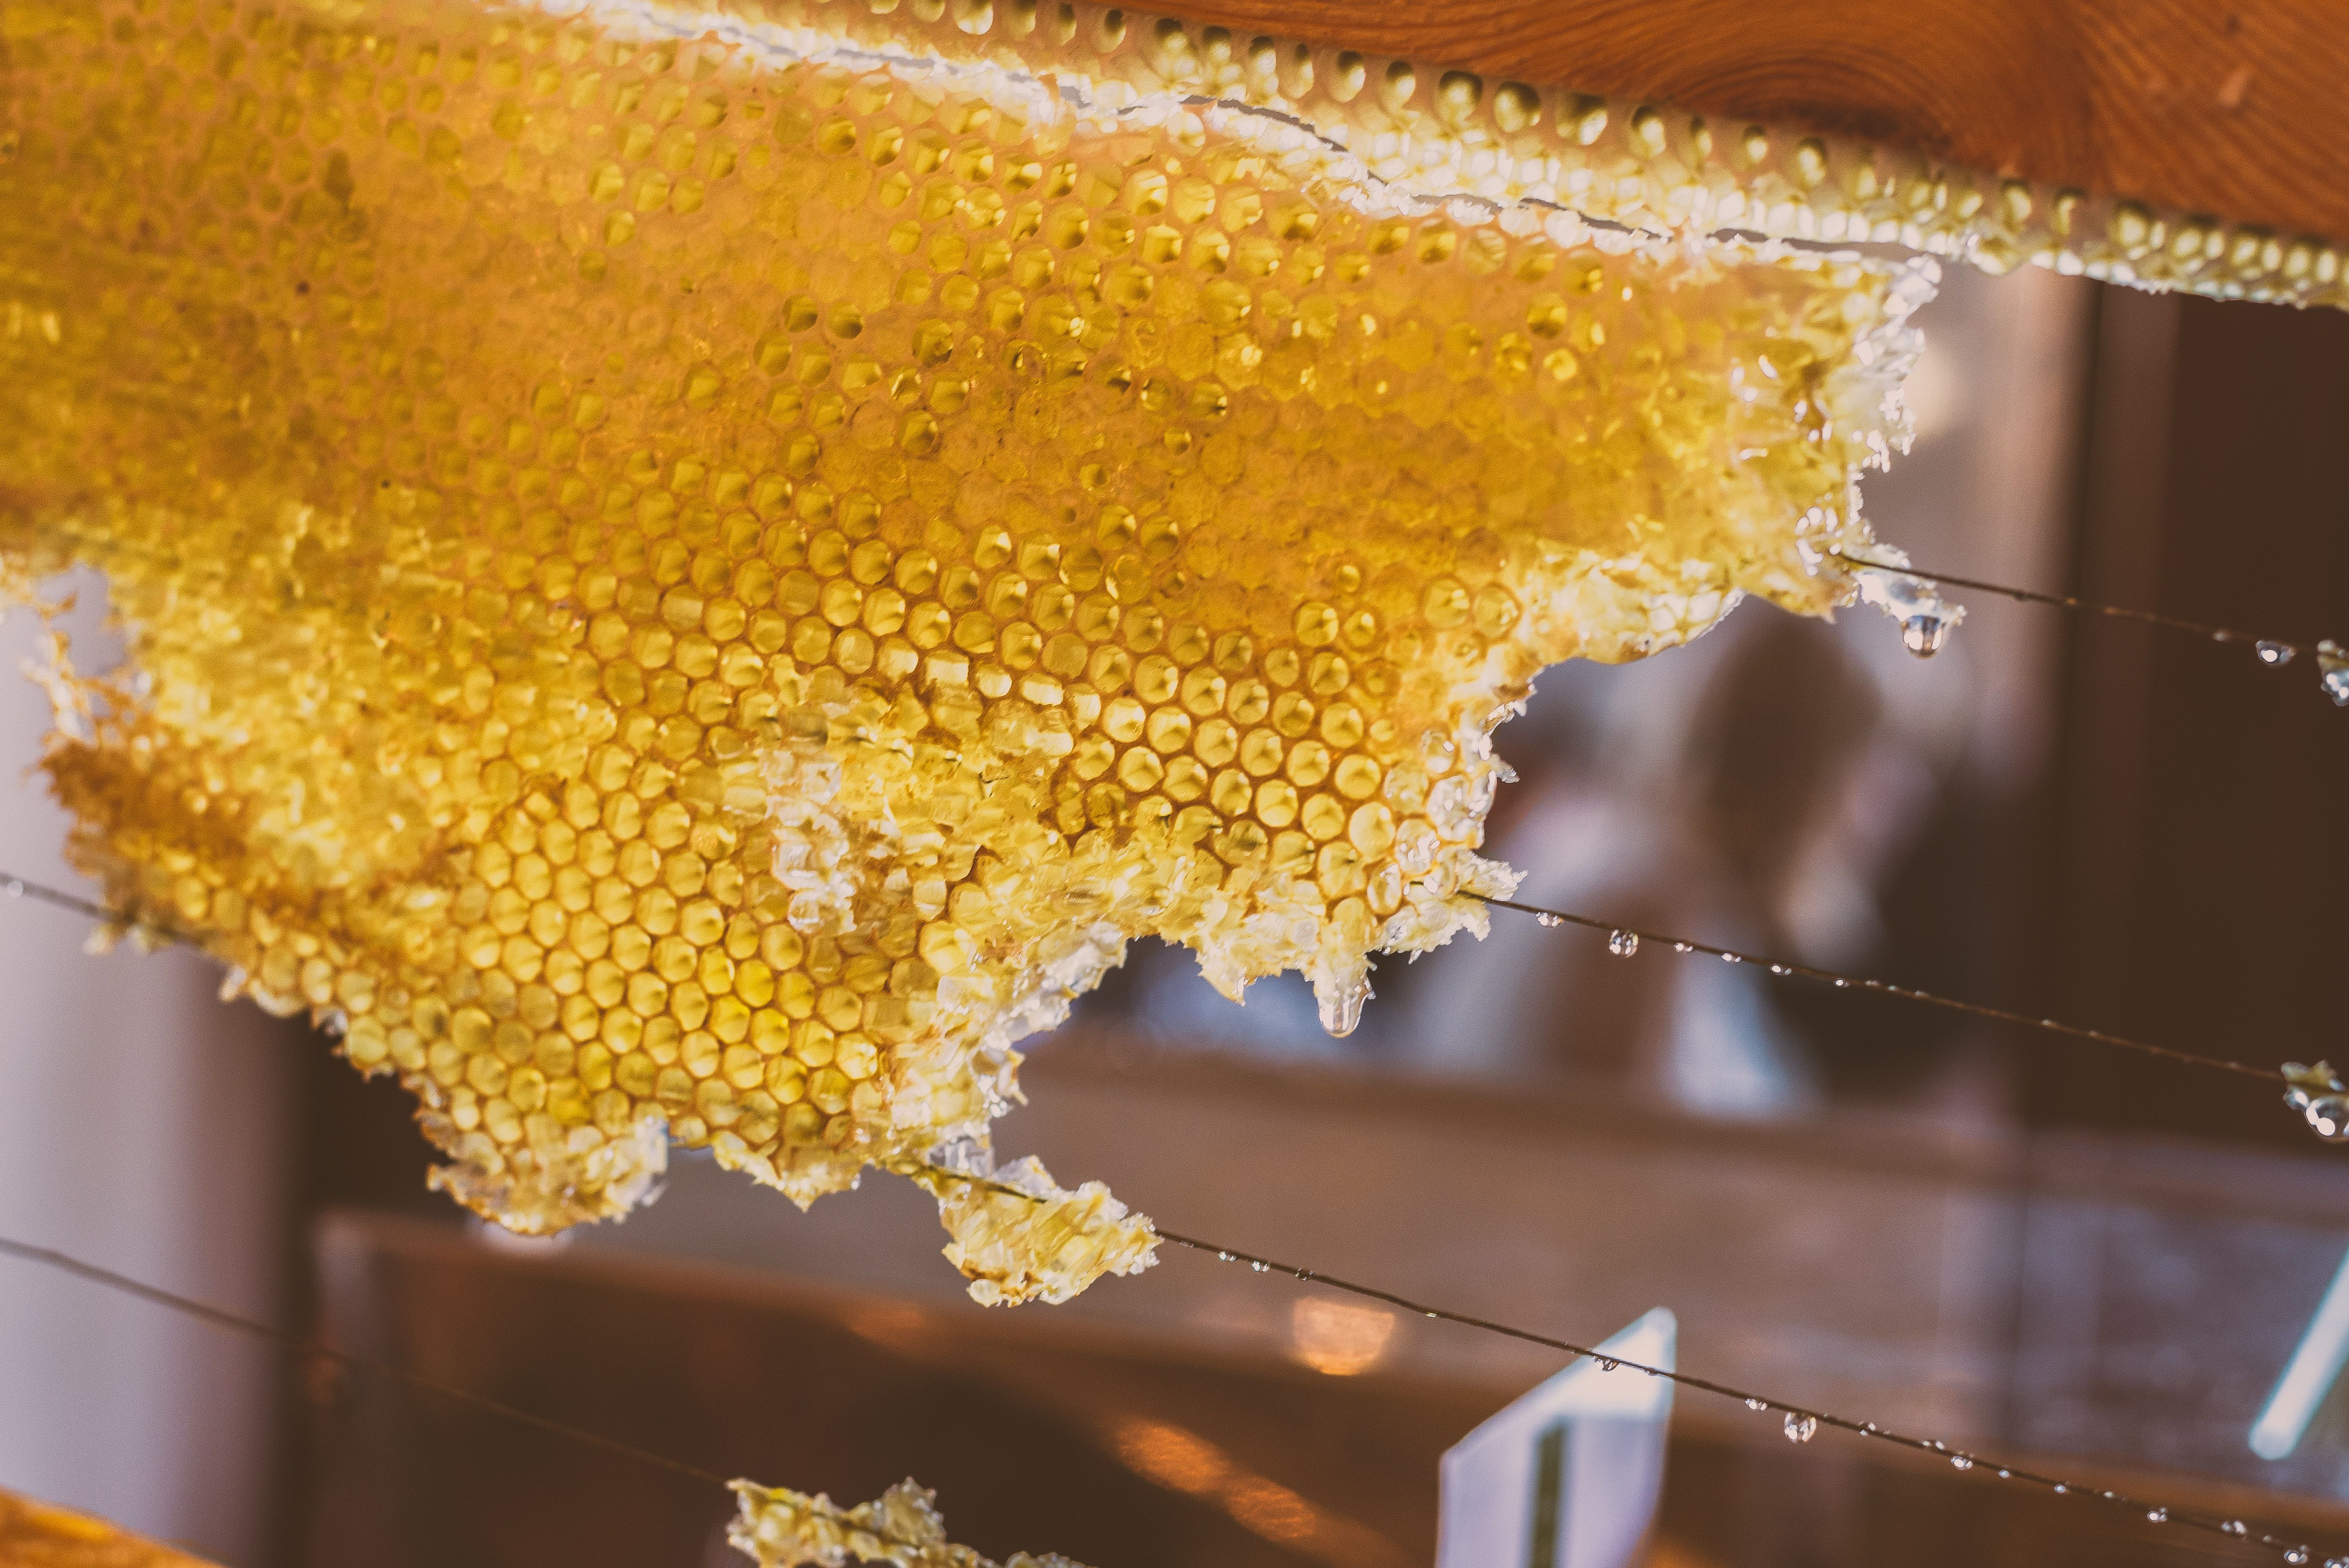 Pin By Bulwark Exterminating Pest Con On Bees In 2020 Honey Pictures Beeswax Raw Honey